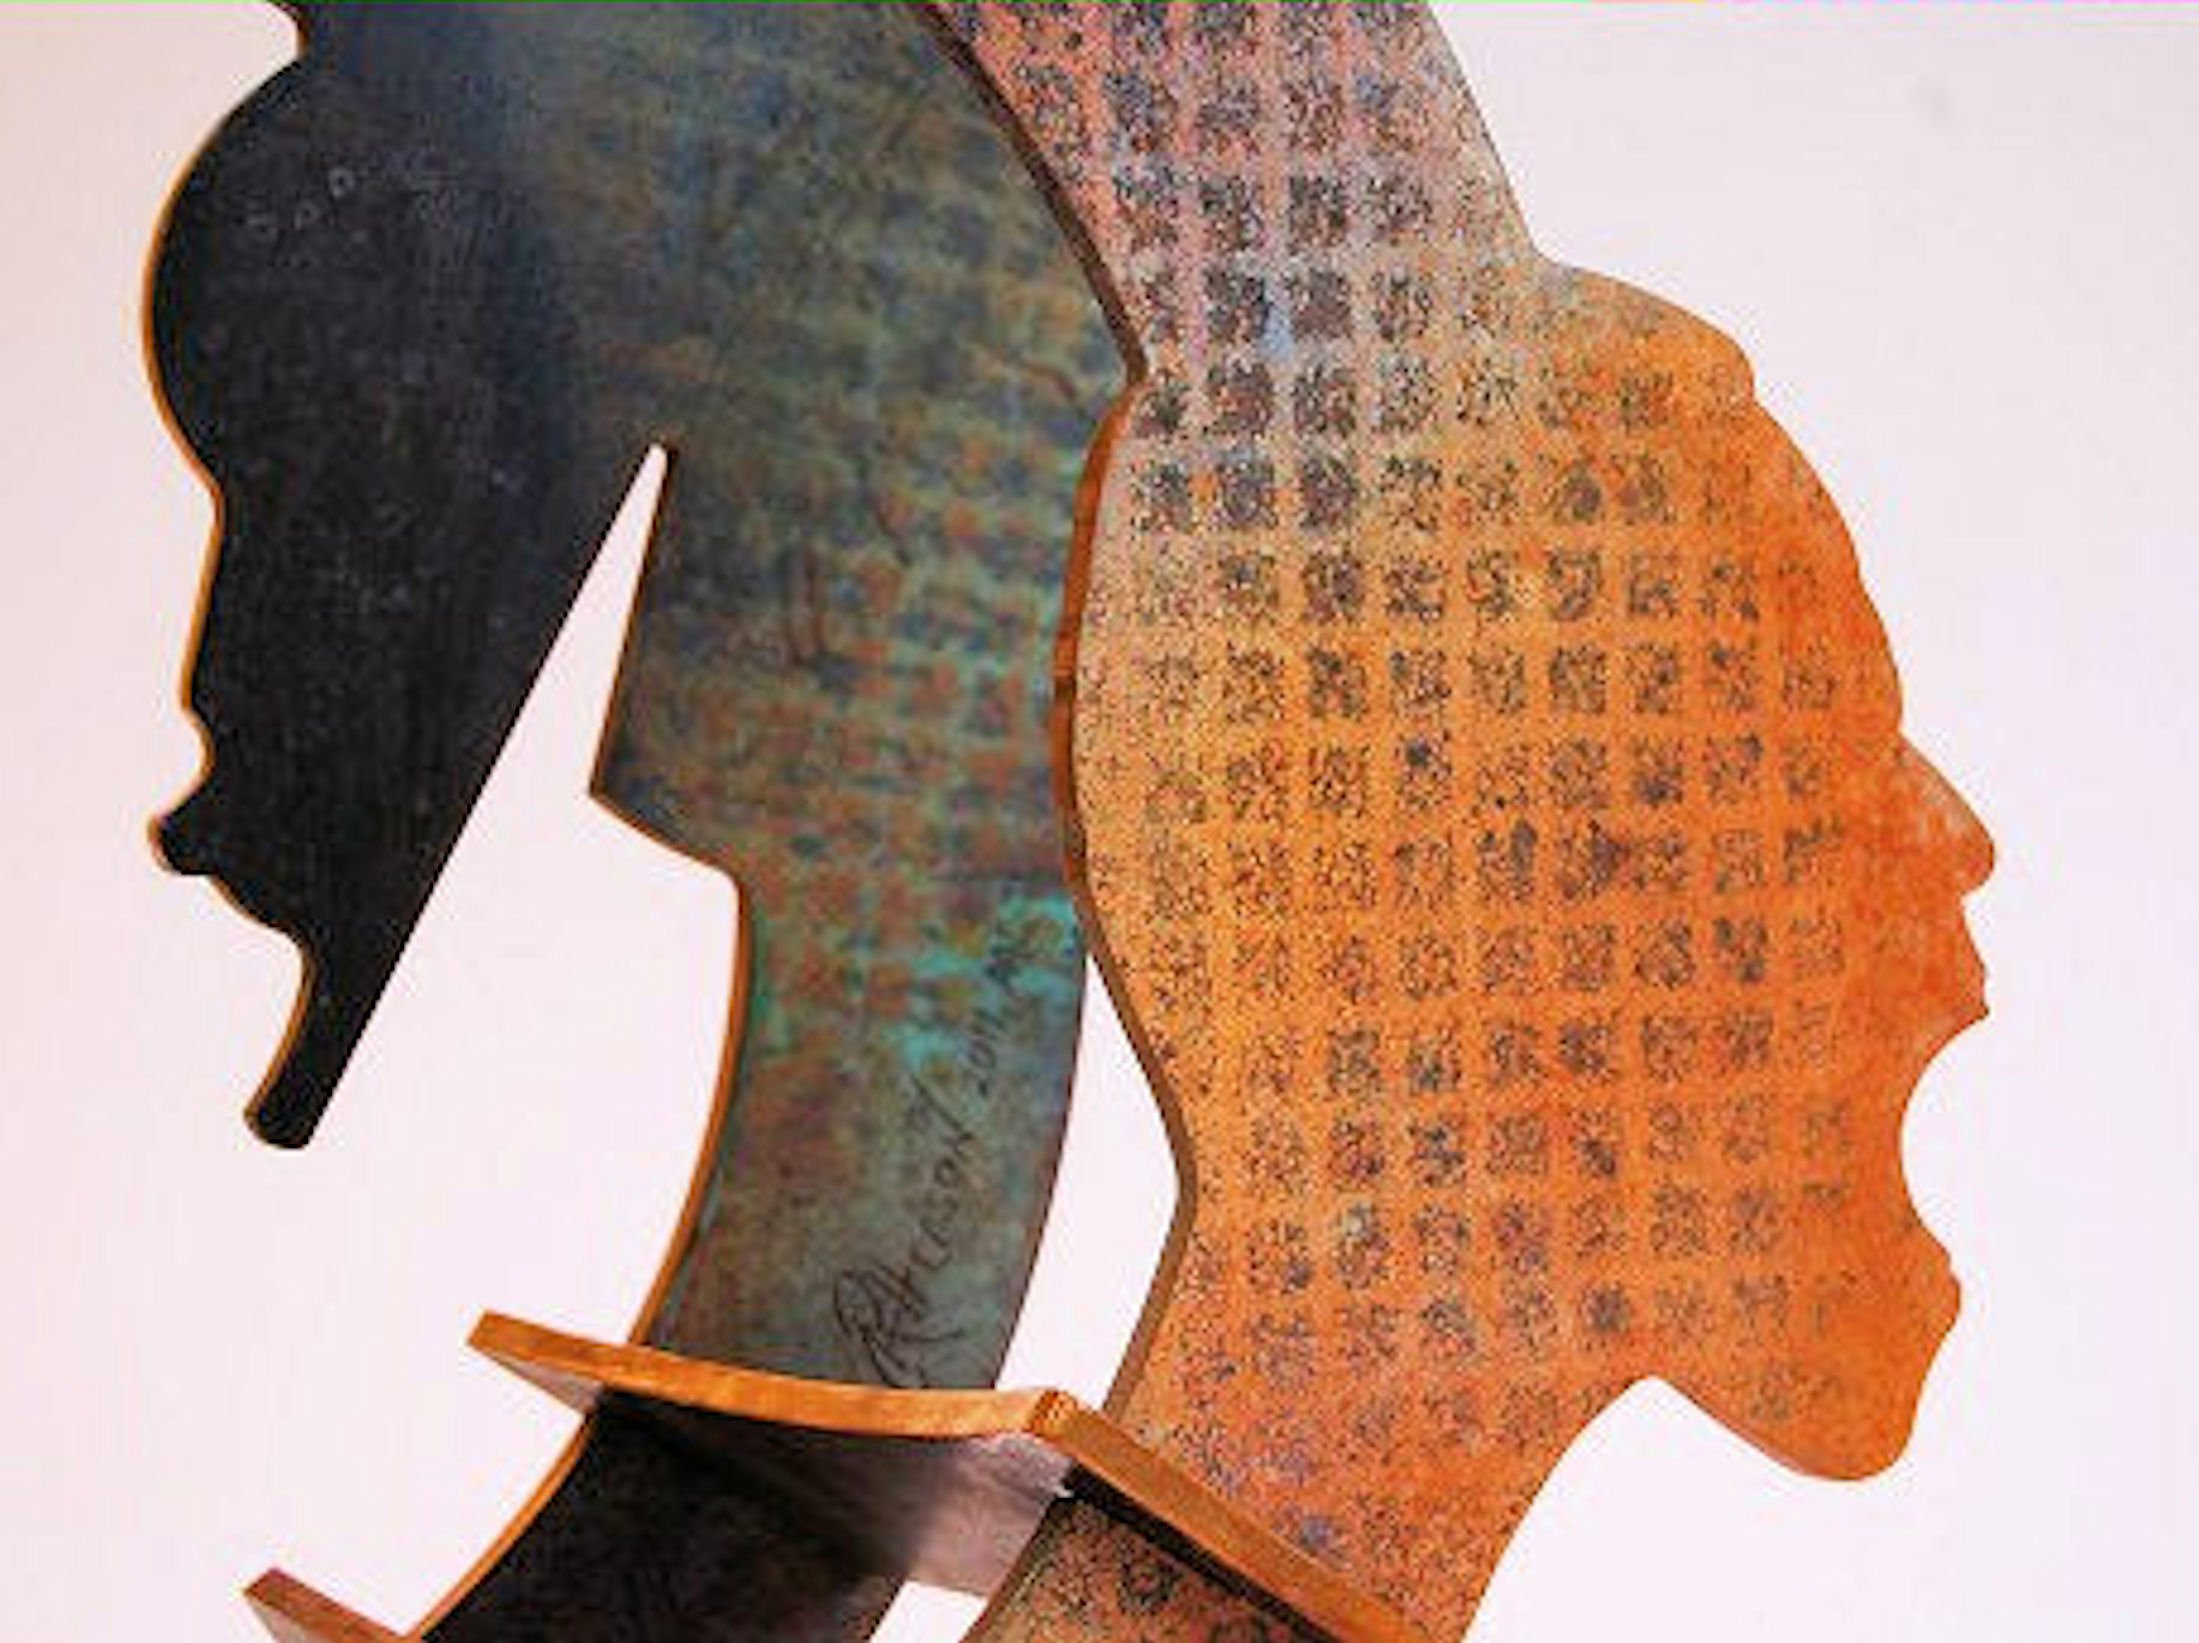 Say It Loud (Detail) - 2011, Fabricated Bronze with Patina